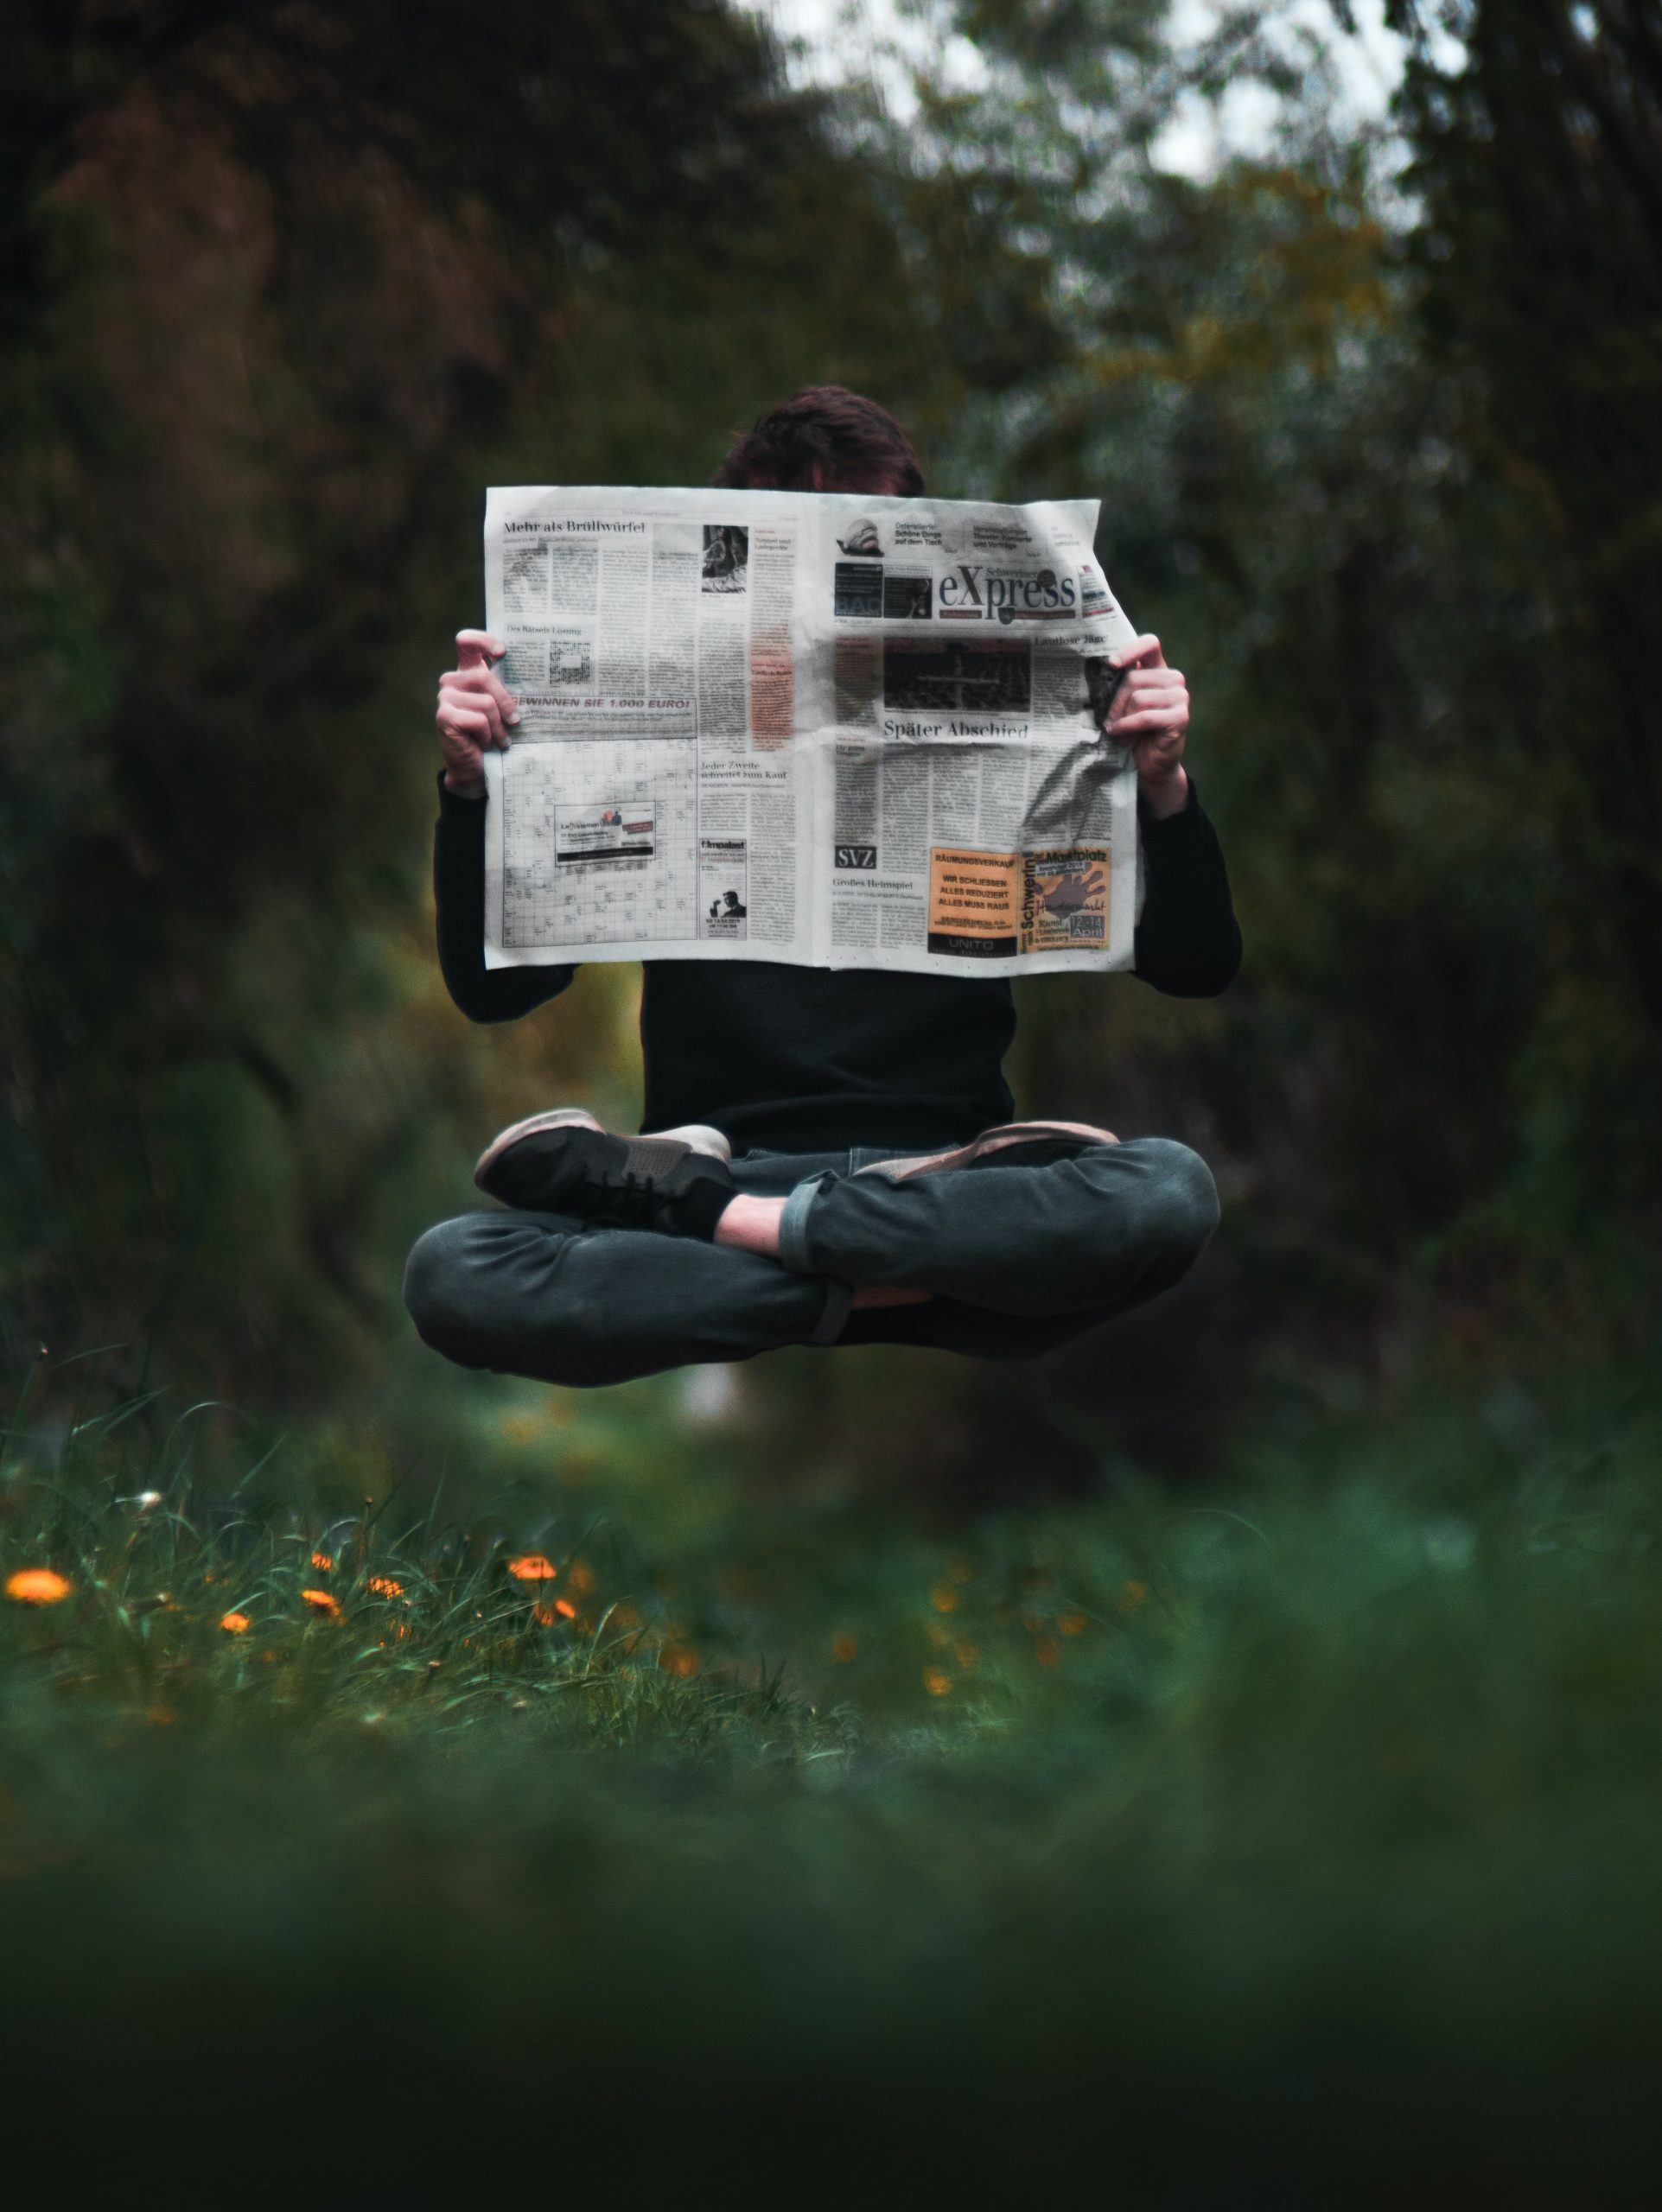 person holding a news paper during daytime